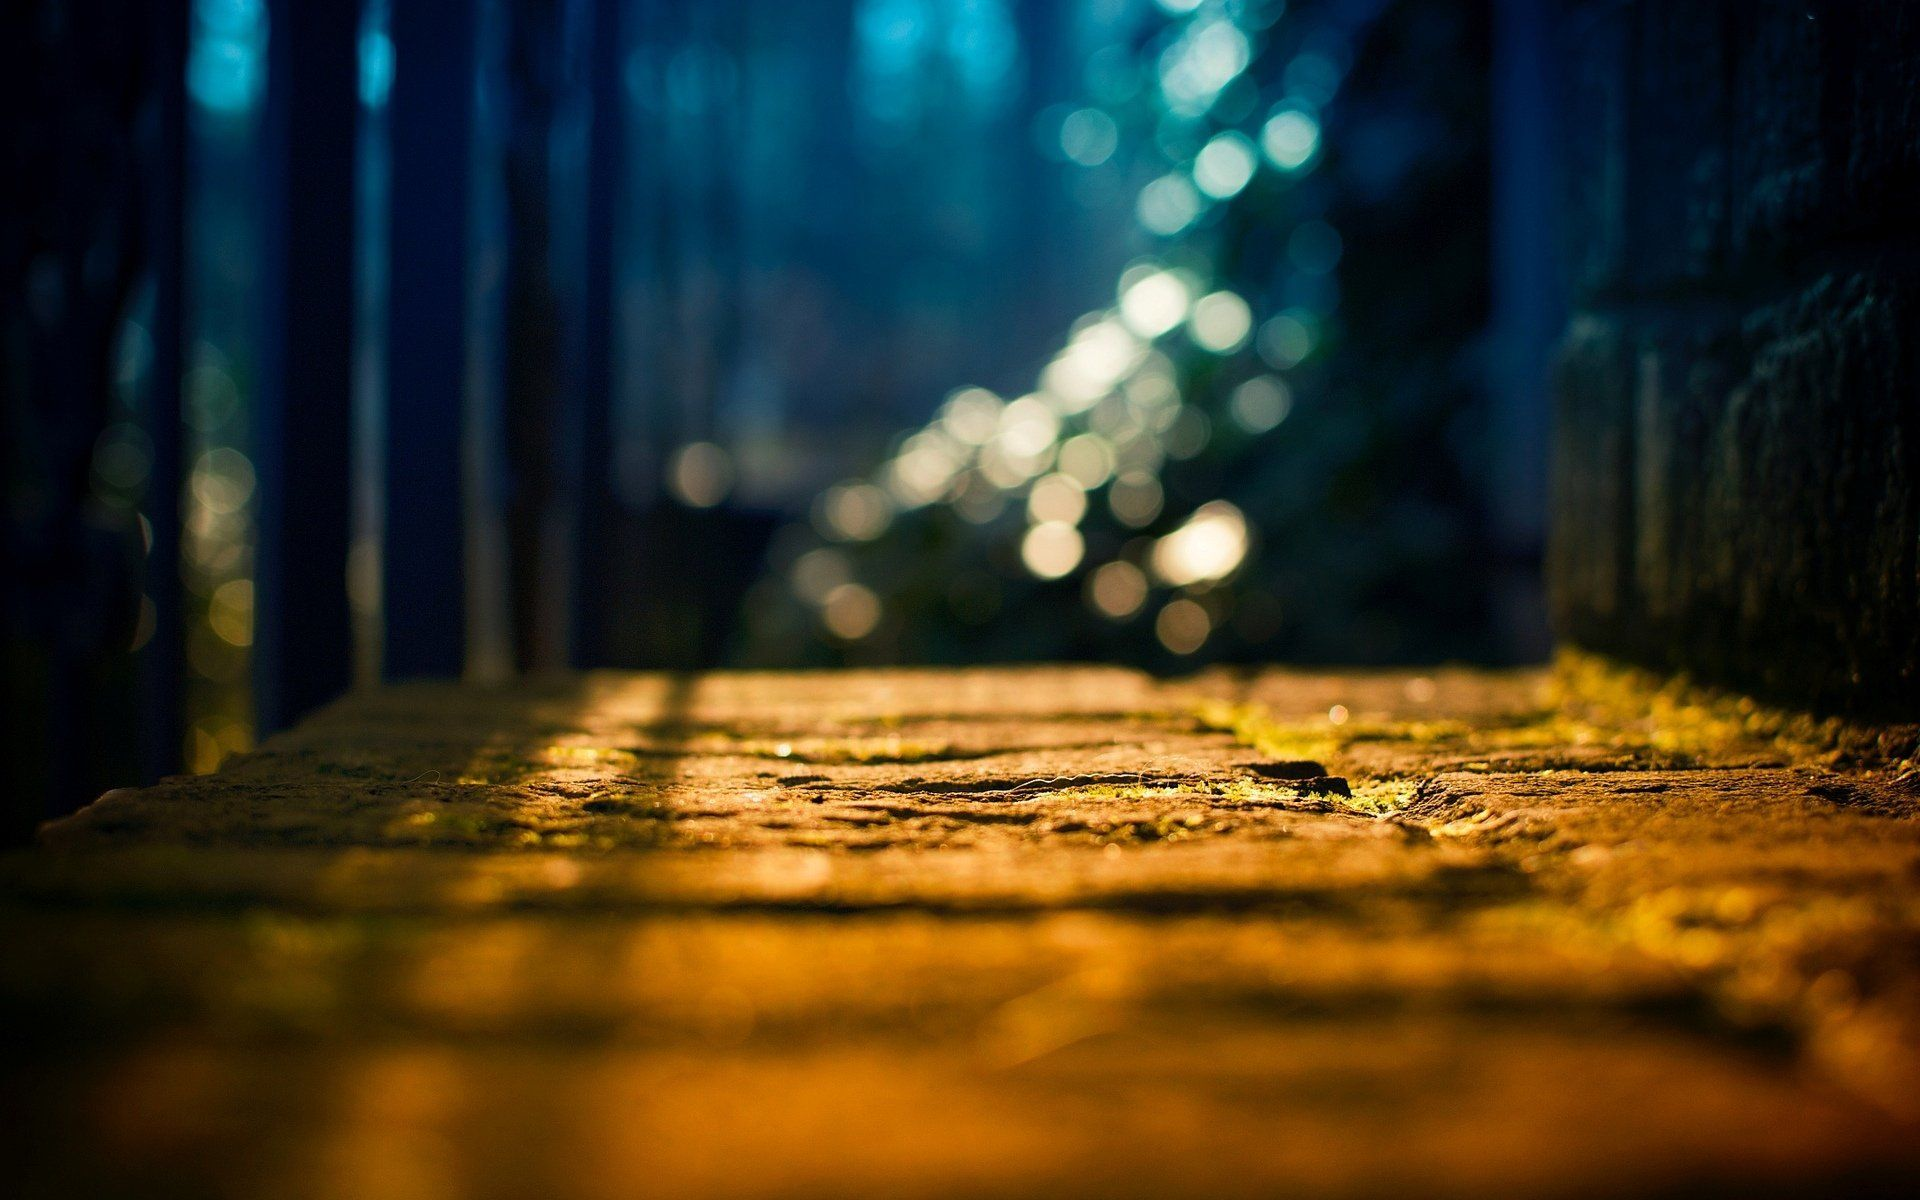 Close Up Land Light Tree Sun Blur Bokeh Background Wallpaper Widescreen Full Screen Widescreen Hd Bokeh Wallpaper Bokeh Background Blur Background Photography